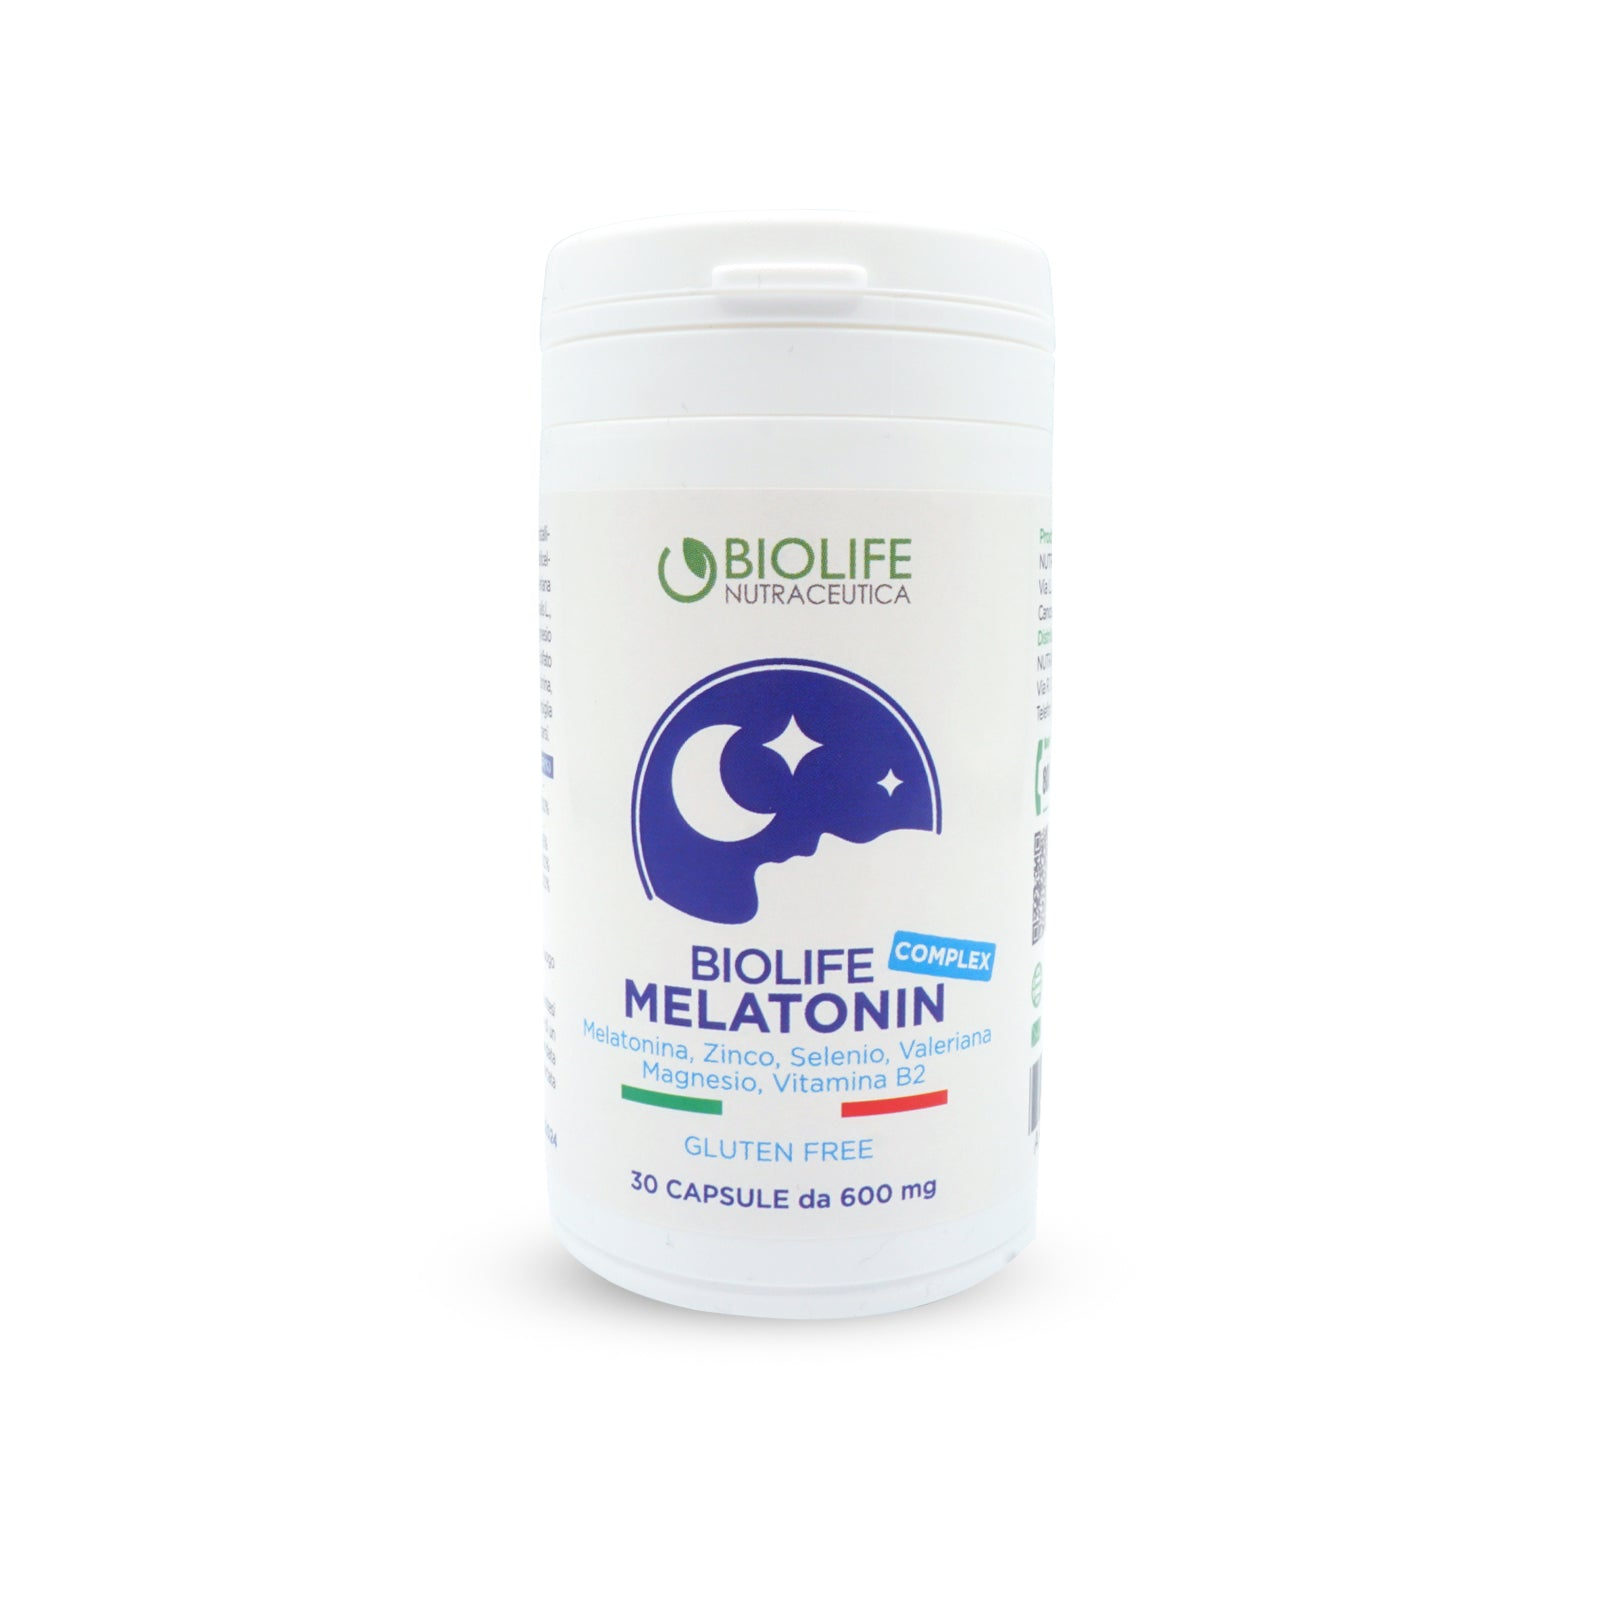 Biolife Melatonin Complex